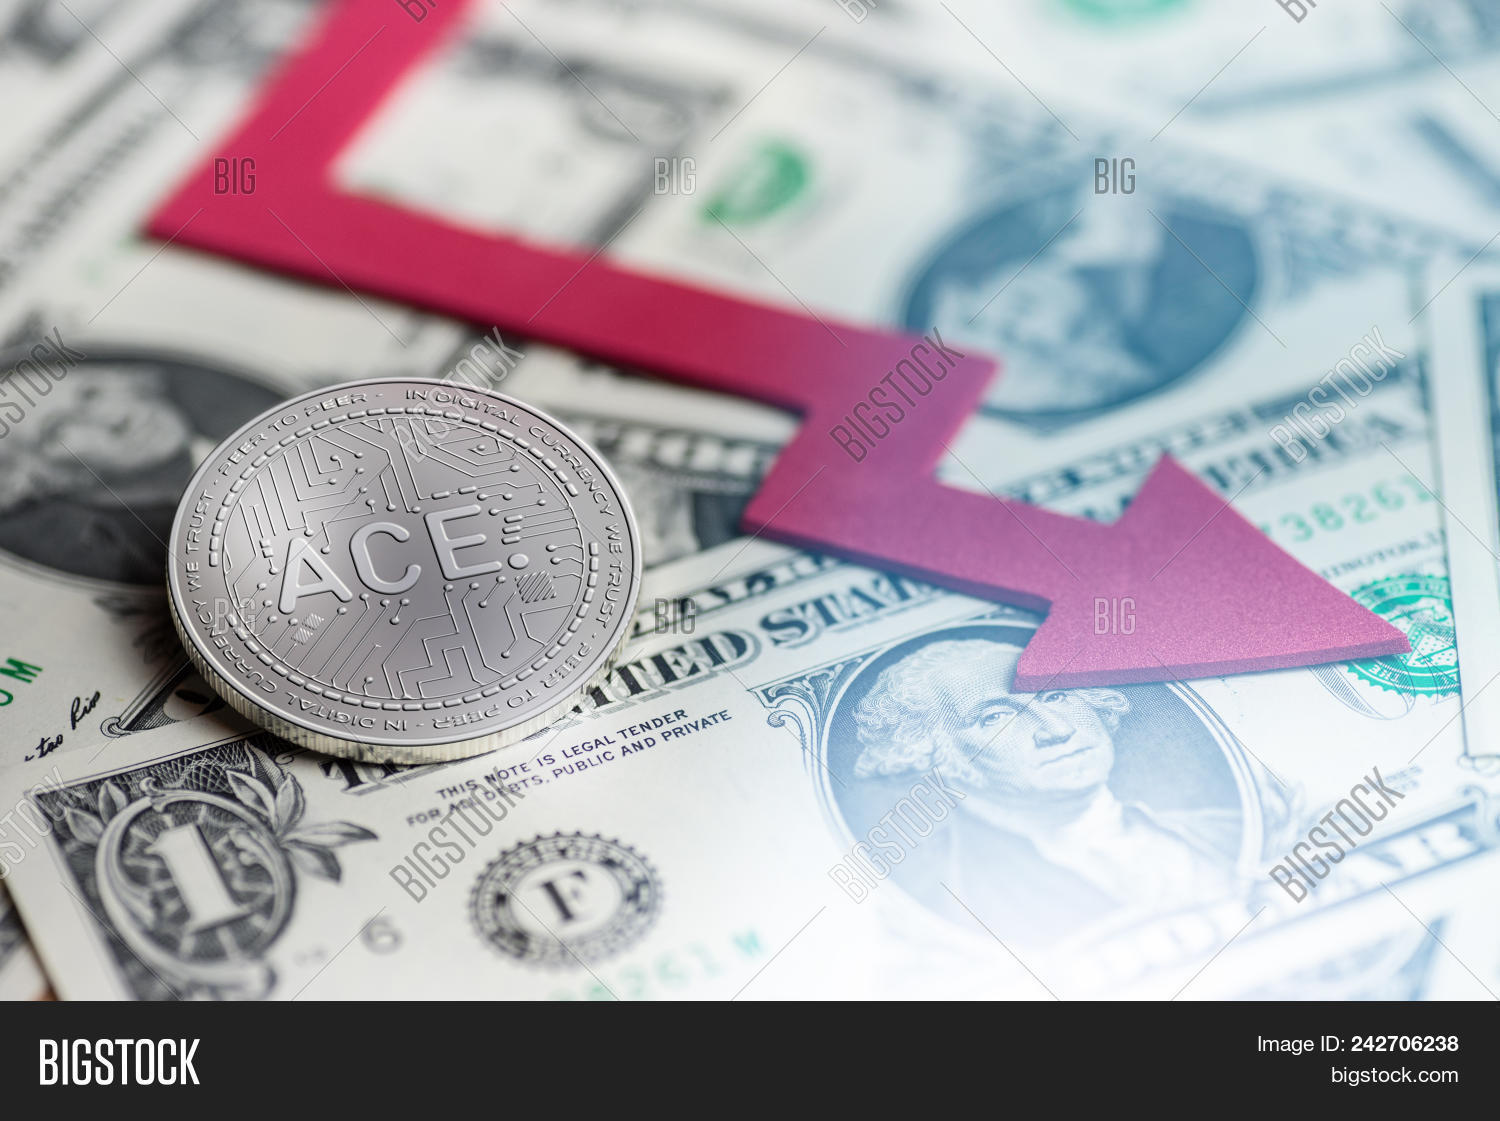 ace coins cryptocurrency